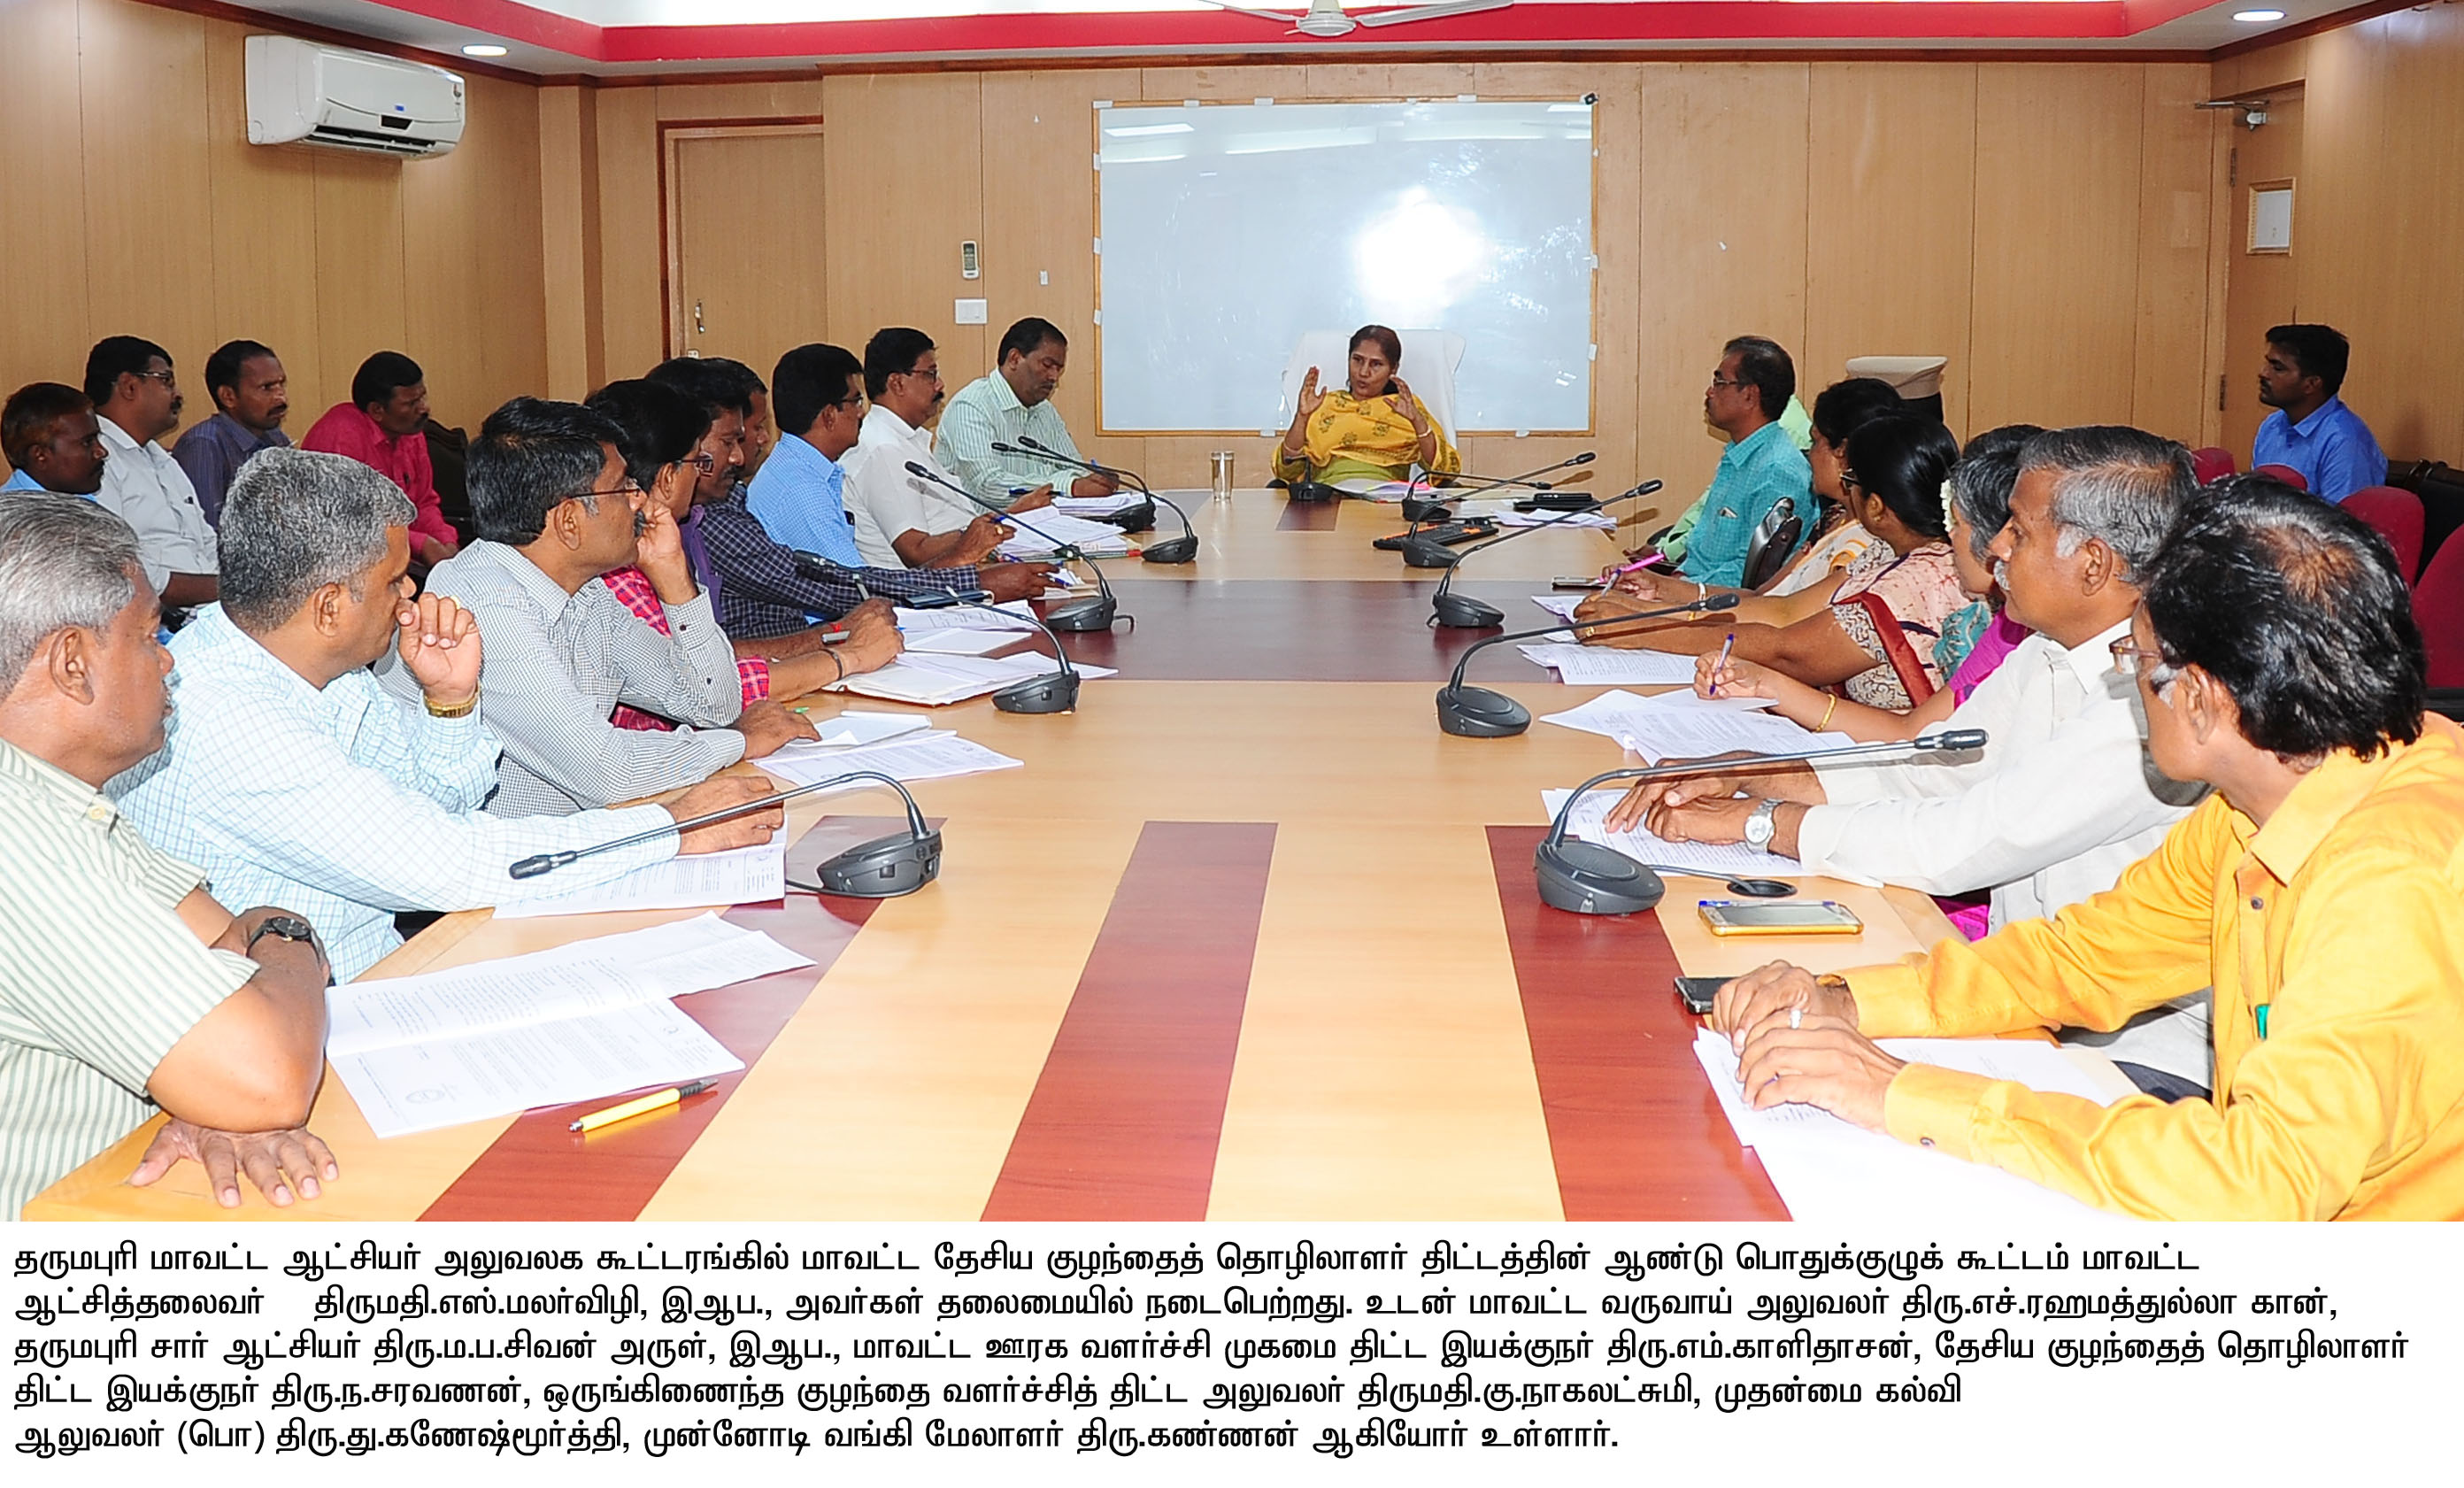 National Child Labour Project - General Body Meeting